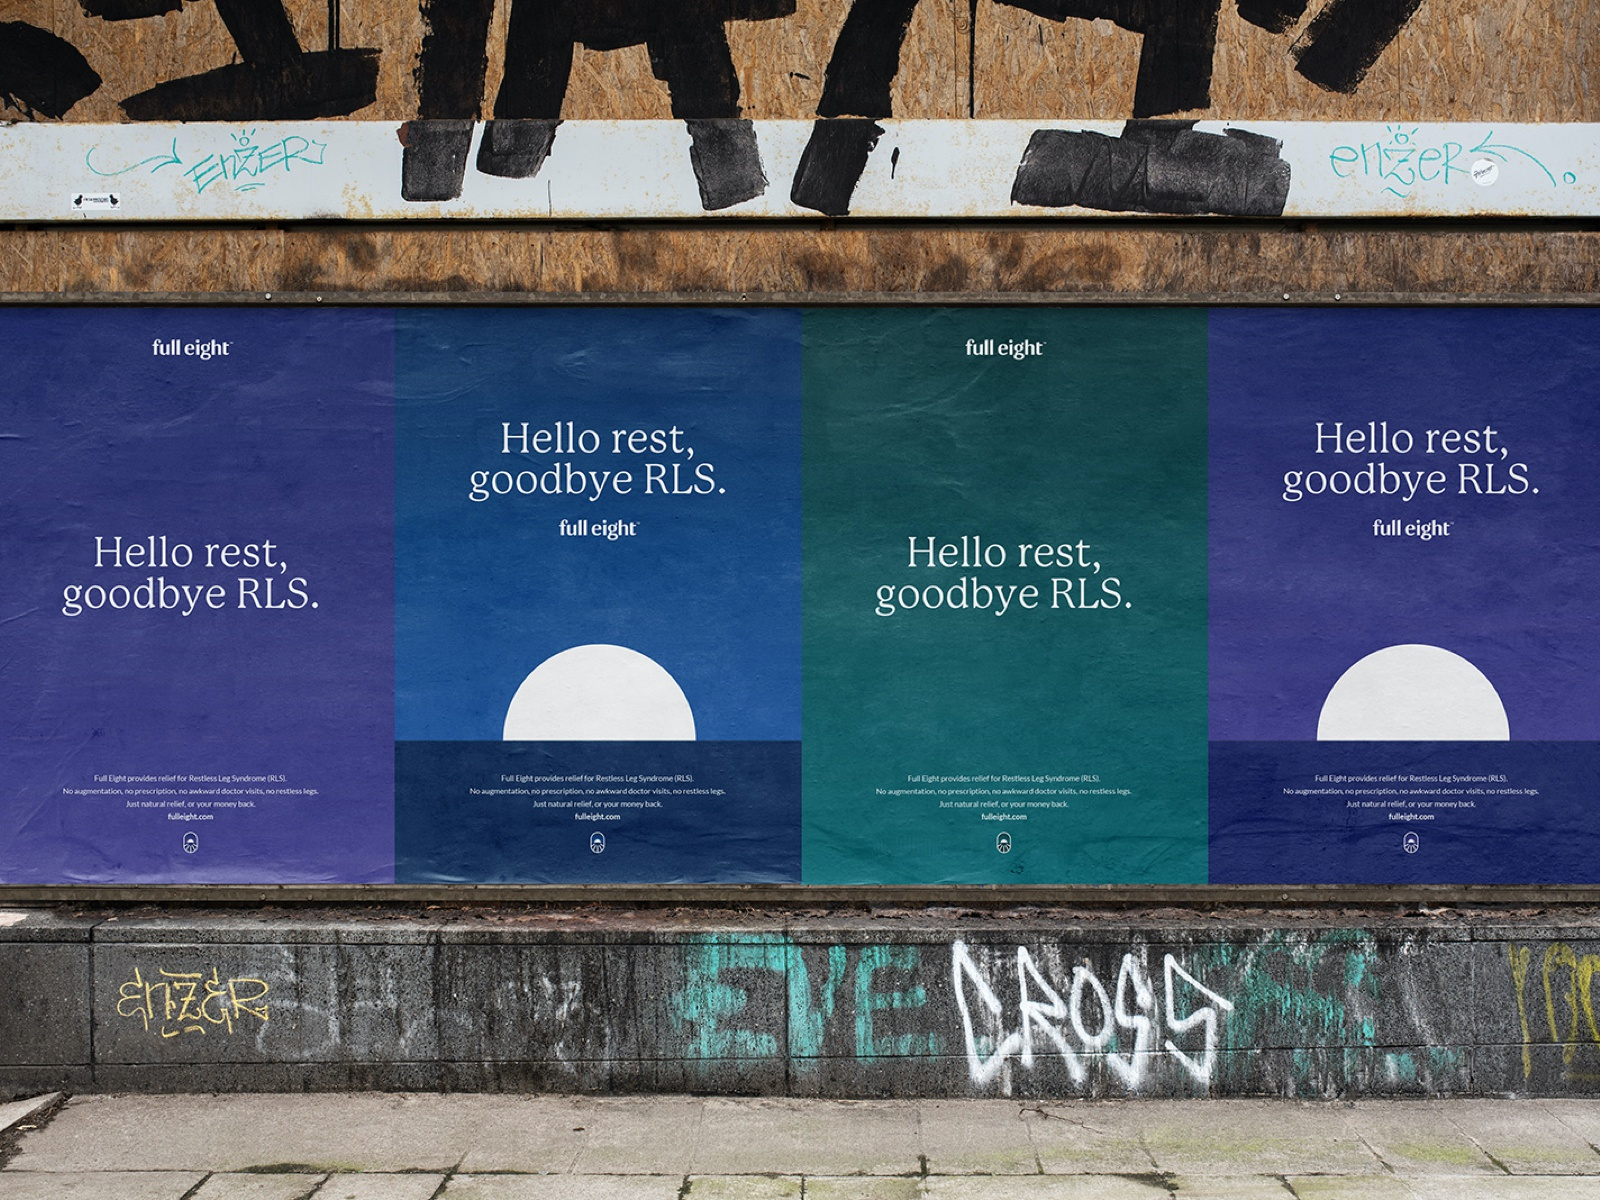 FullEight visual identity: Brand concept